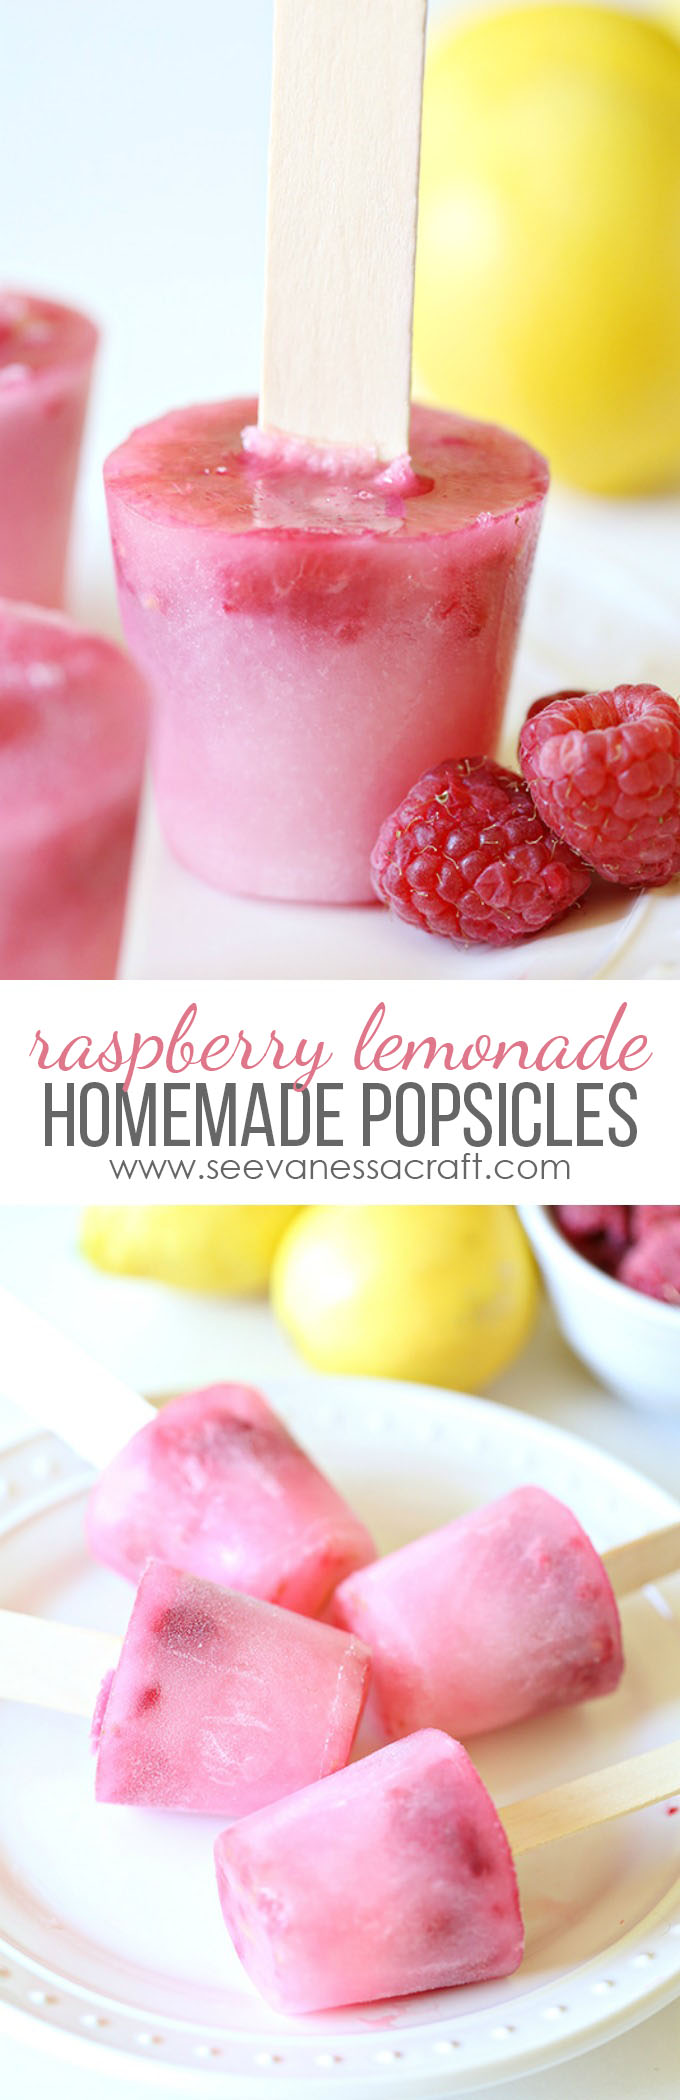 Homemade Raspberry Lemonade Popsicles